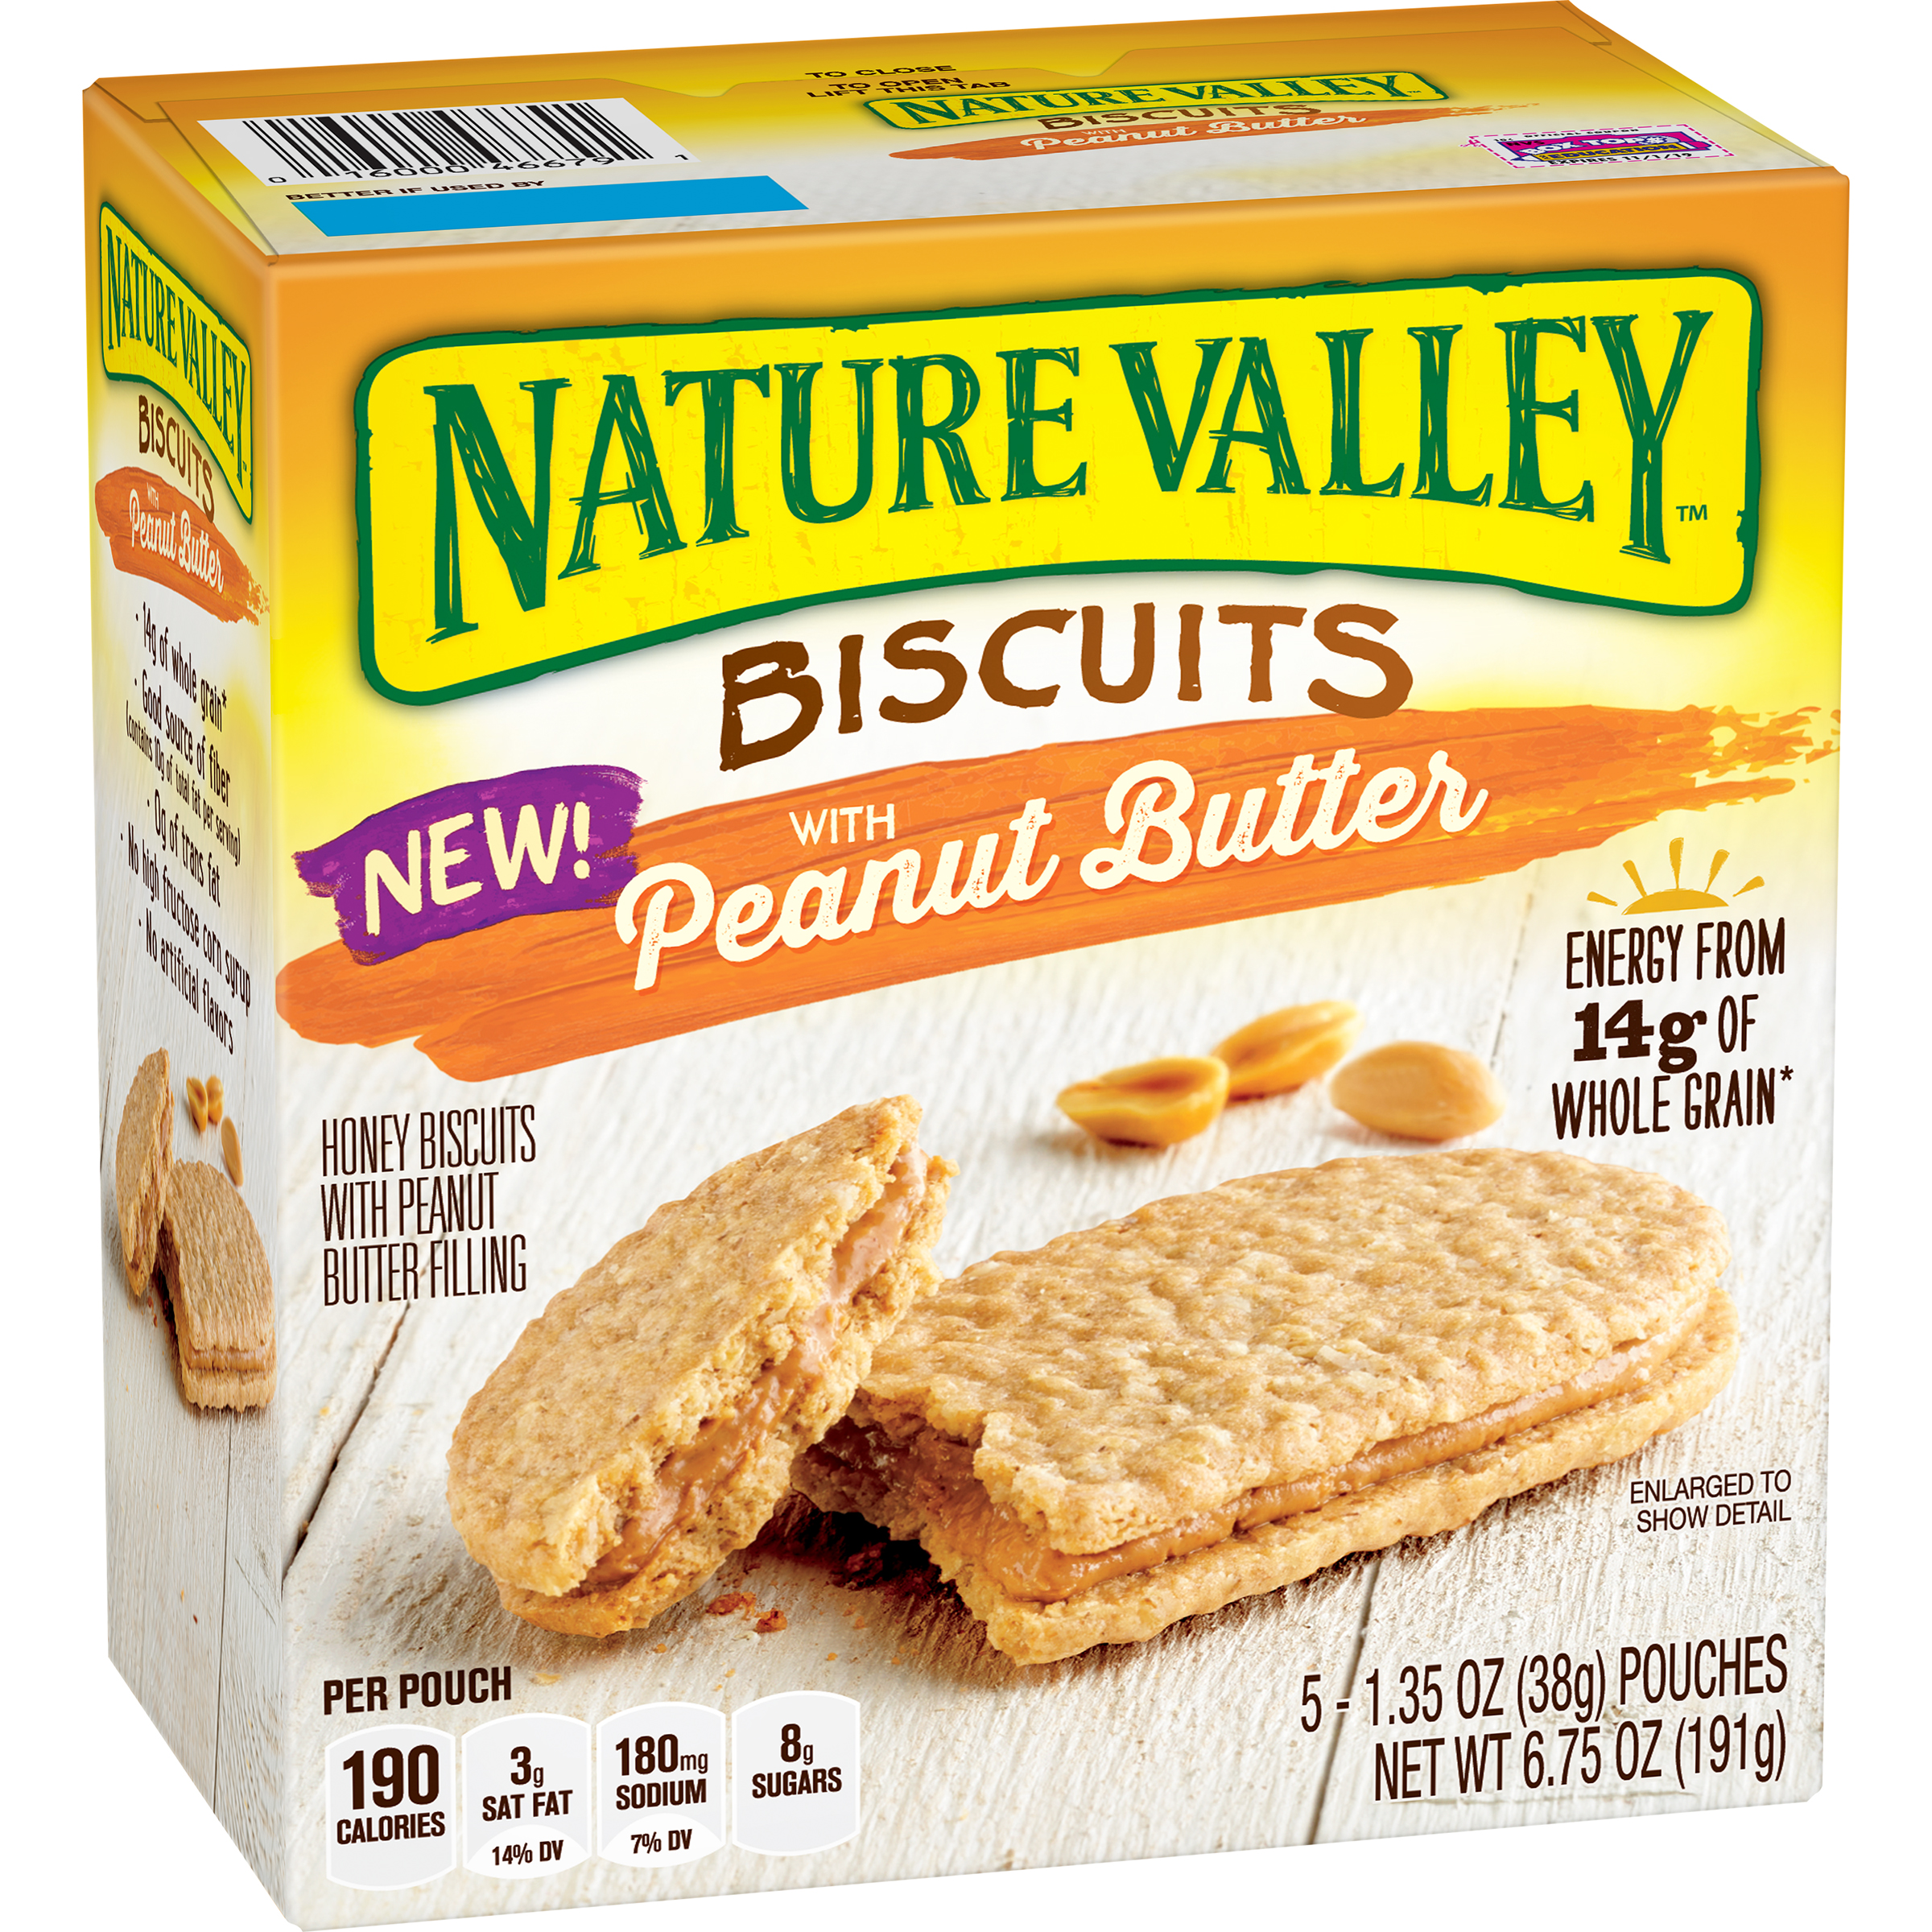 Nature Valley® Biscuits with Peanut Butter 5 ct Box